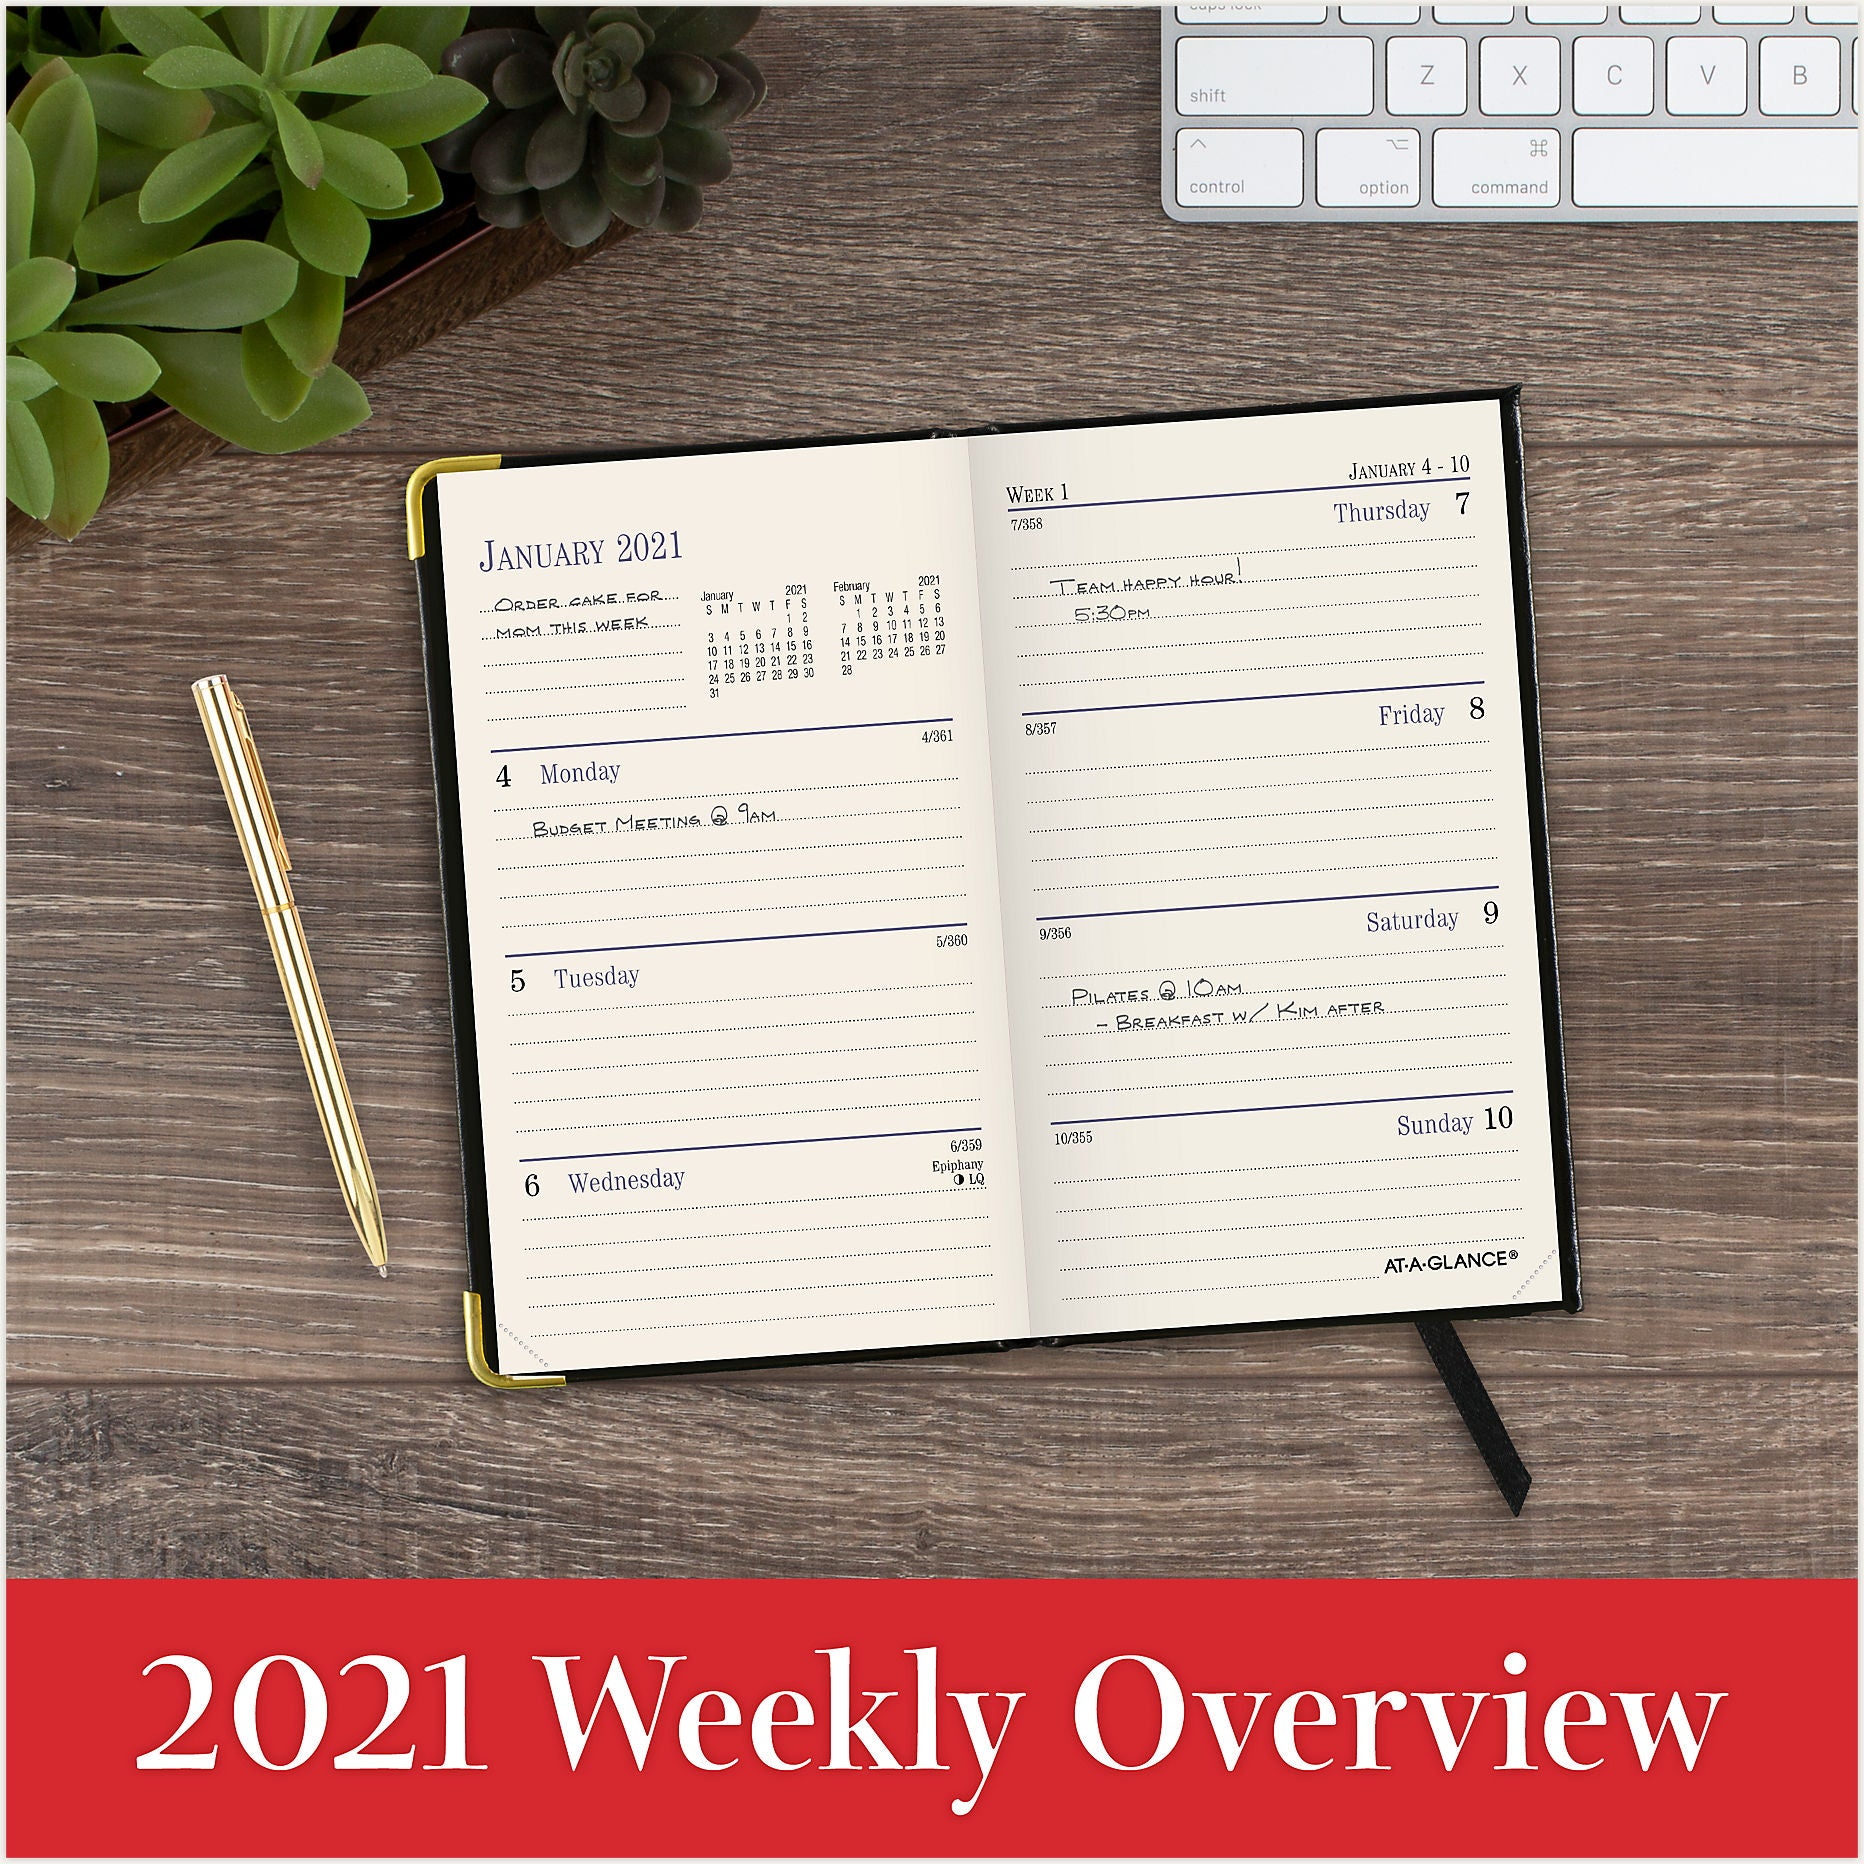 70-1111 WEEKLY/MONTHLY AT A GLANCE CALENDARS 2021